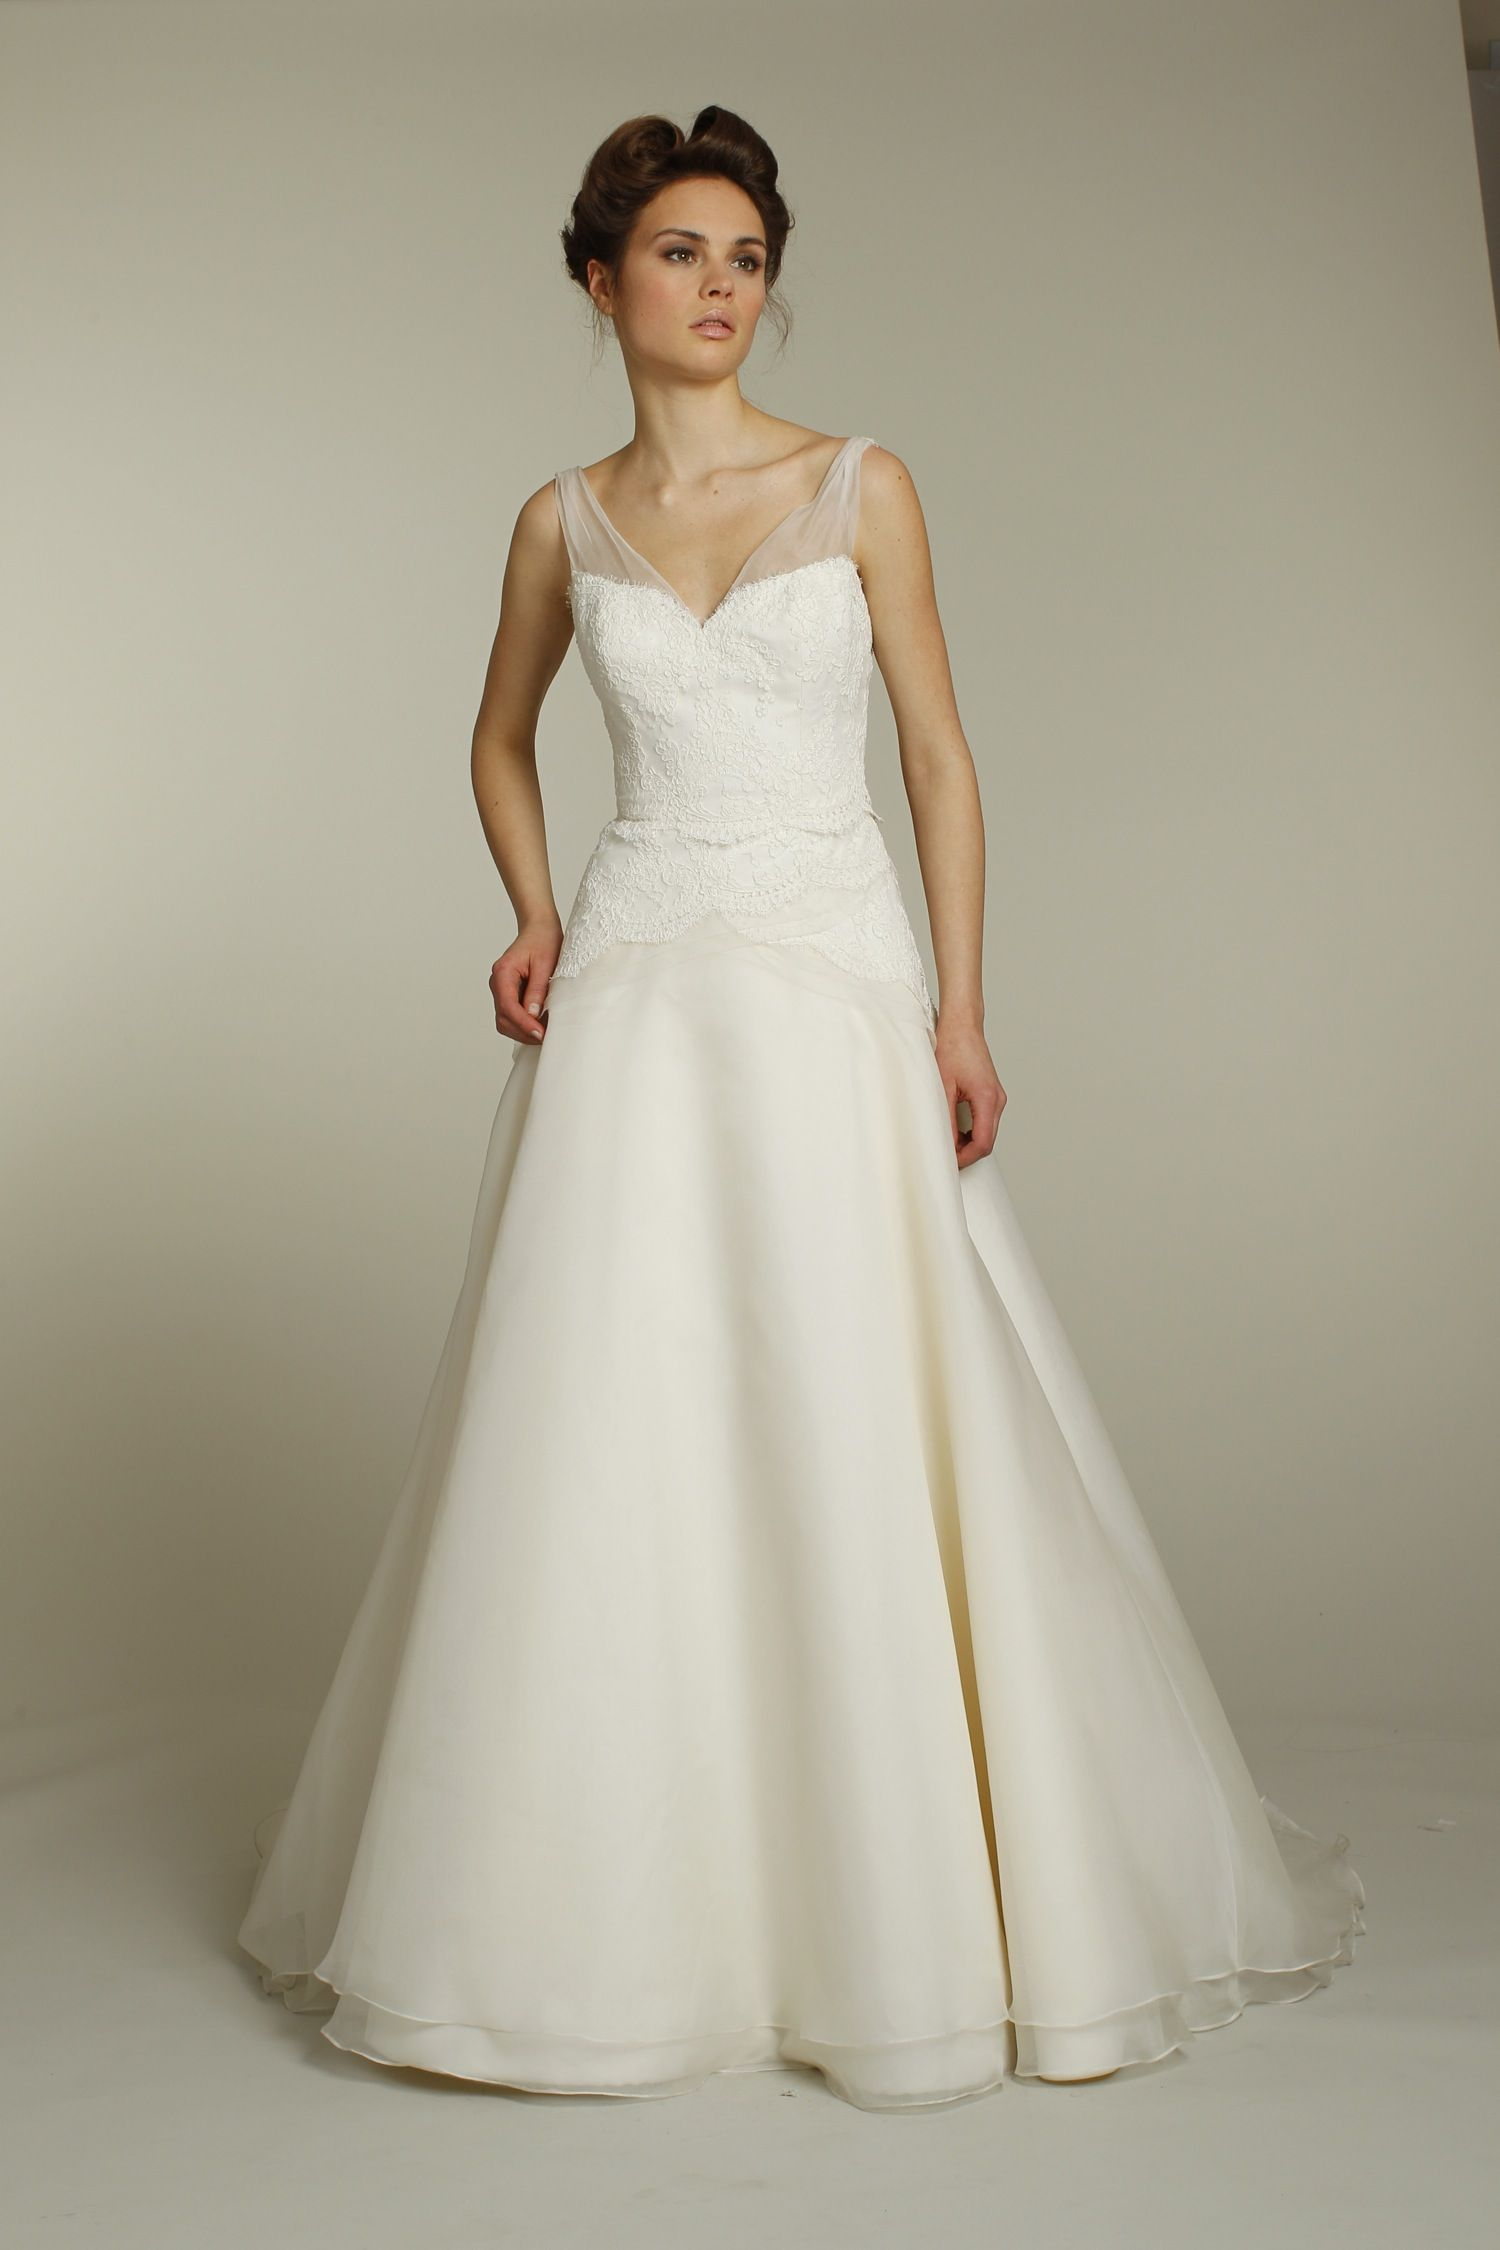 Nice Classic ivory a line wedding dress with lace applique and sheer illusion straps